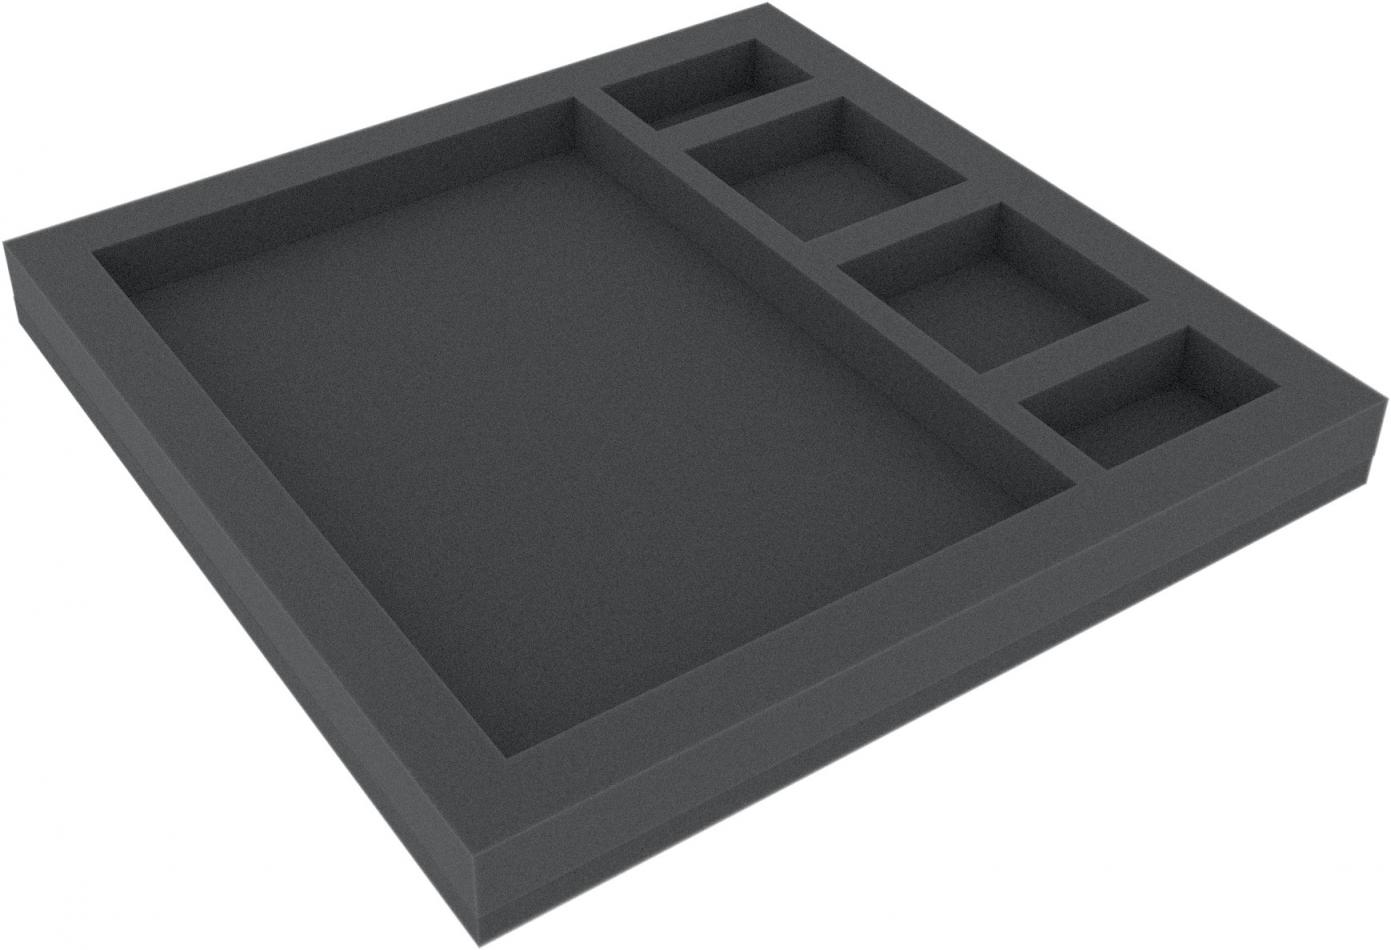 AFHW030BO 285 mm x 285 mm x 30 mm foam tray for board game boxes (5 slots)